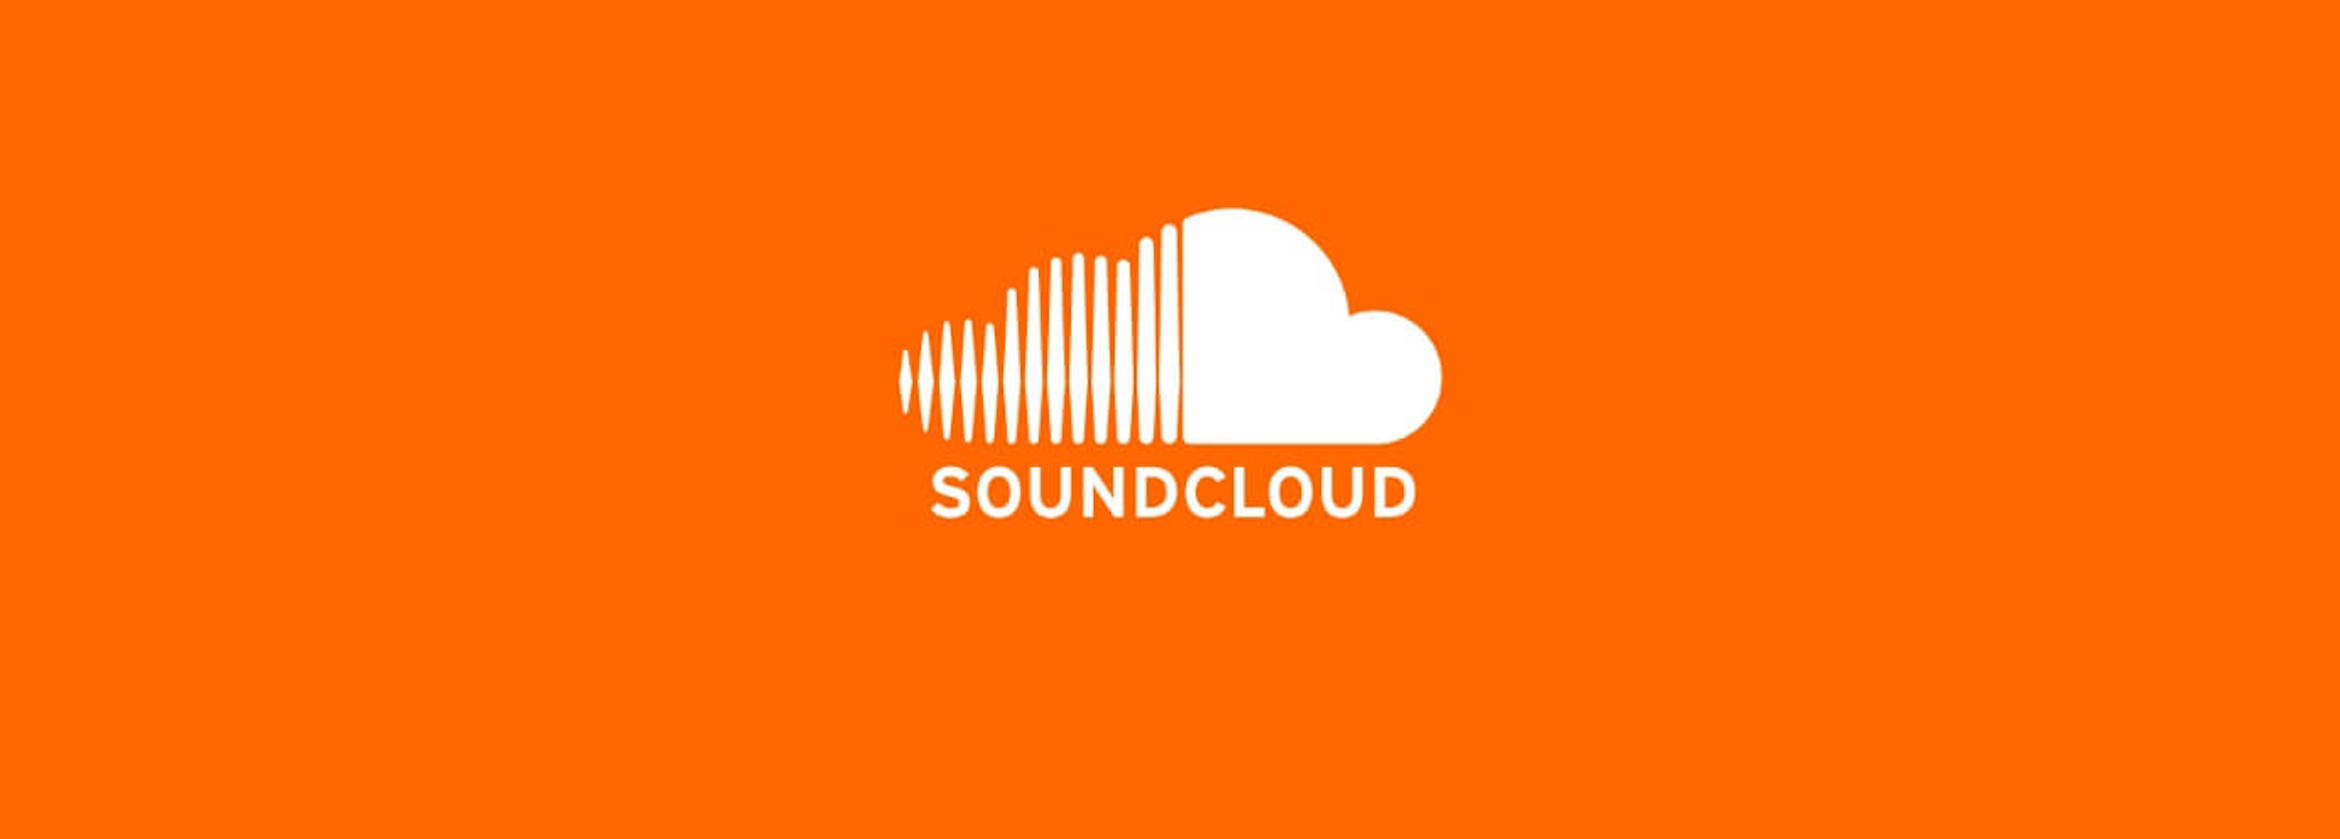 Los angeles soundcloud promotion